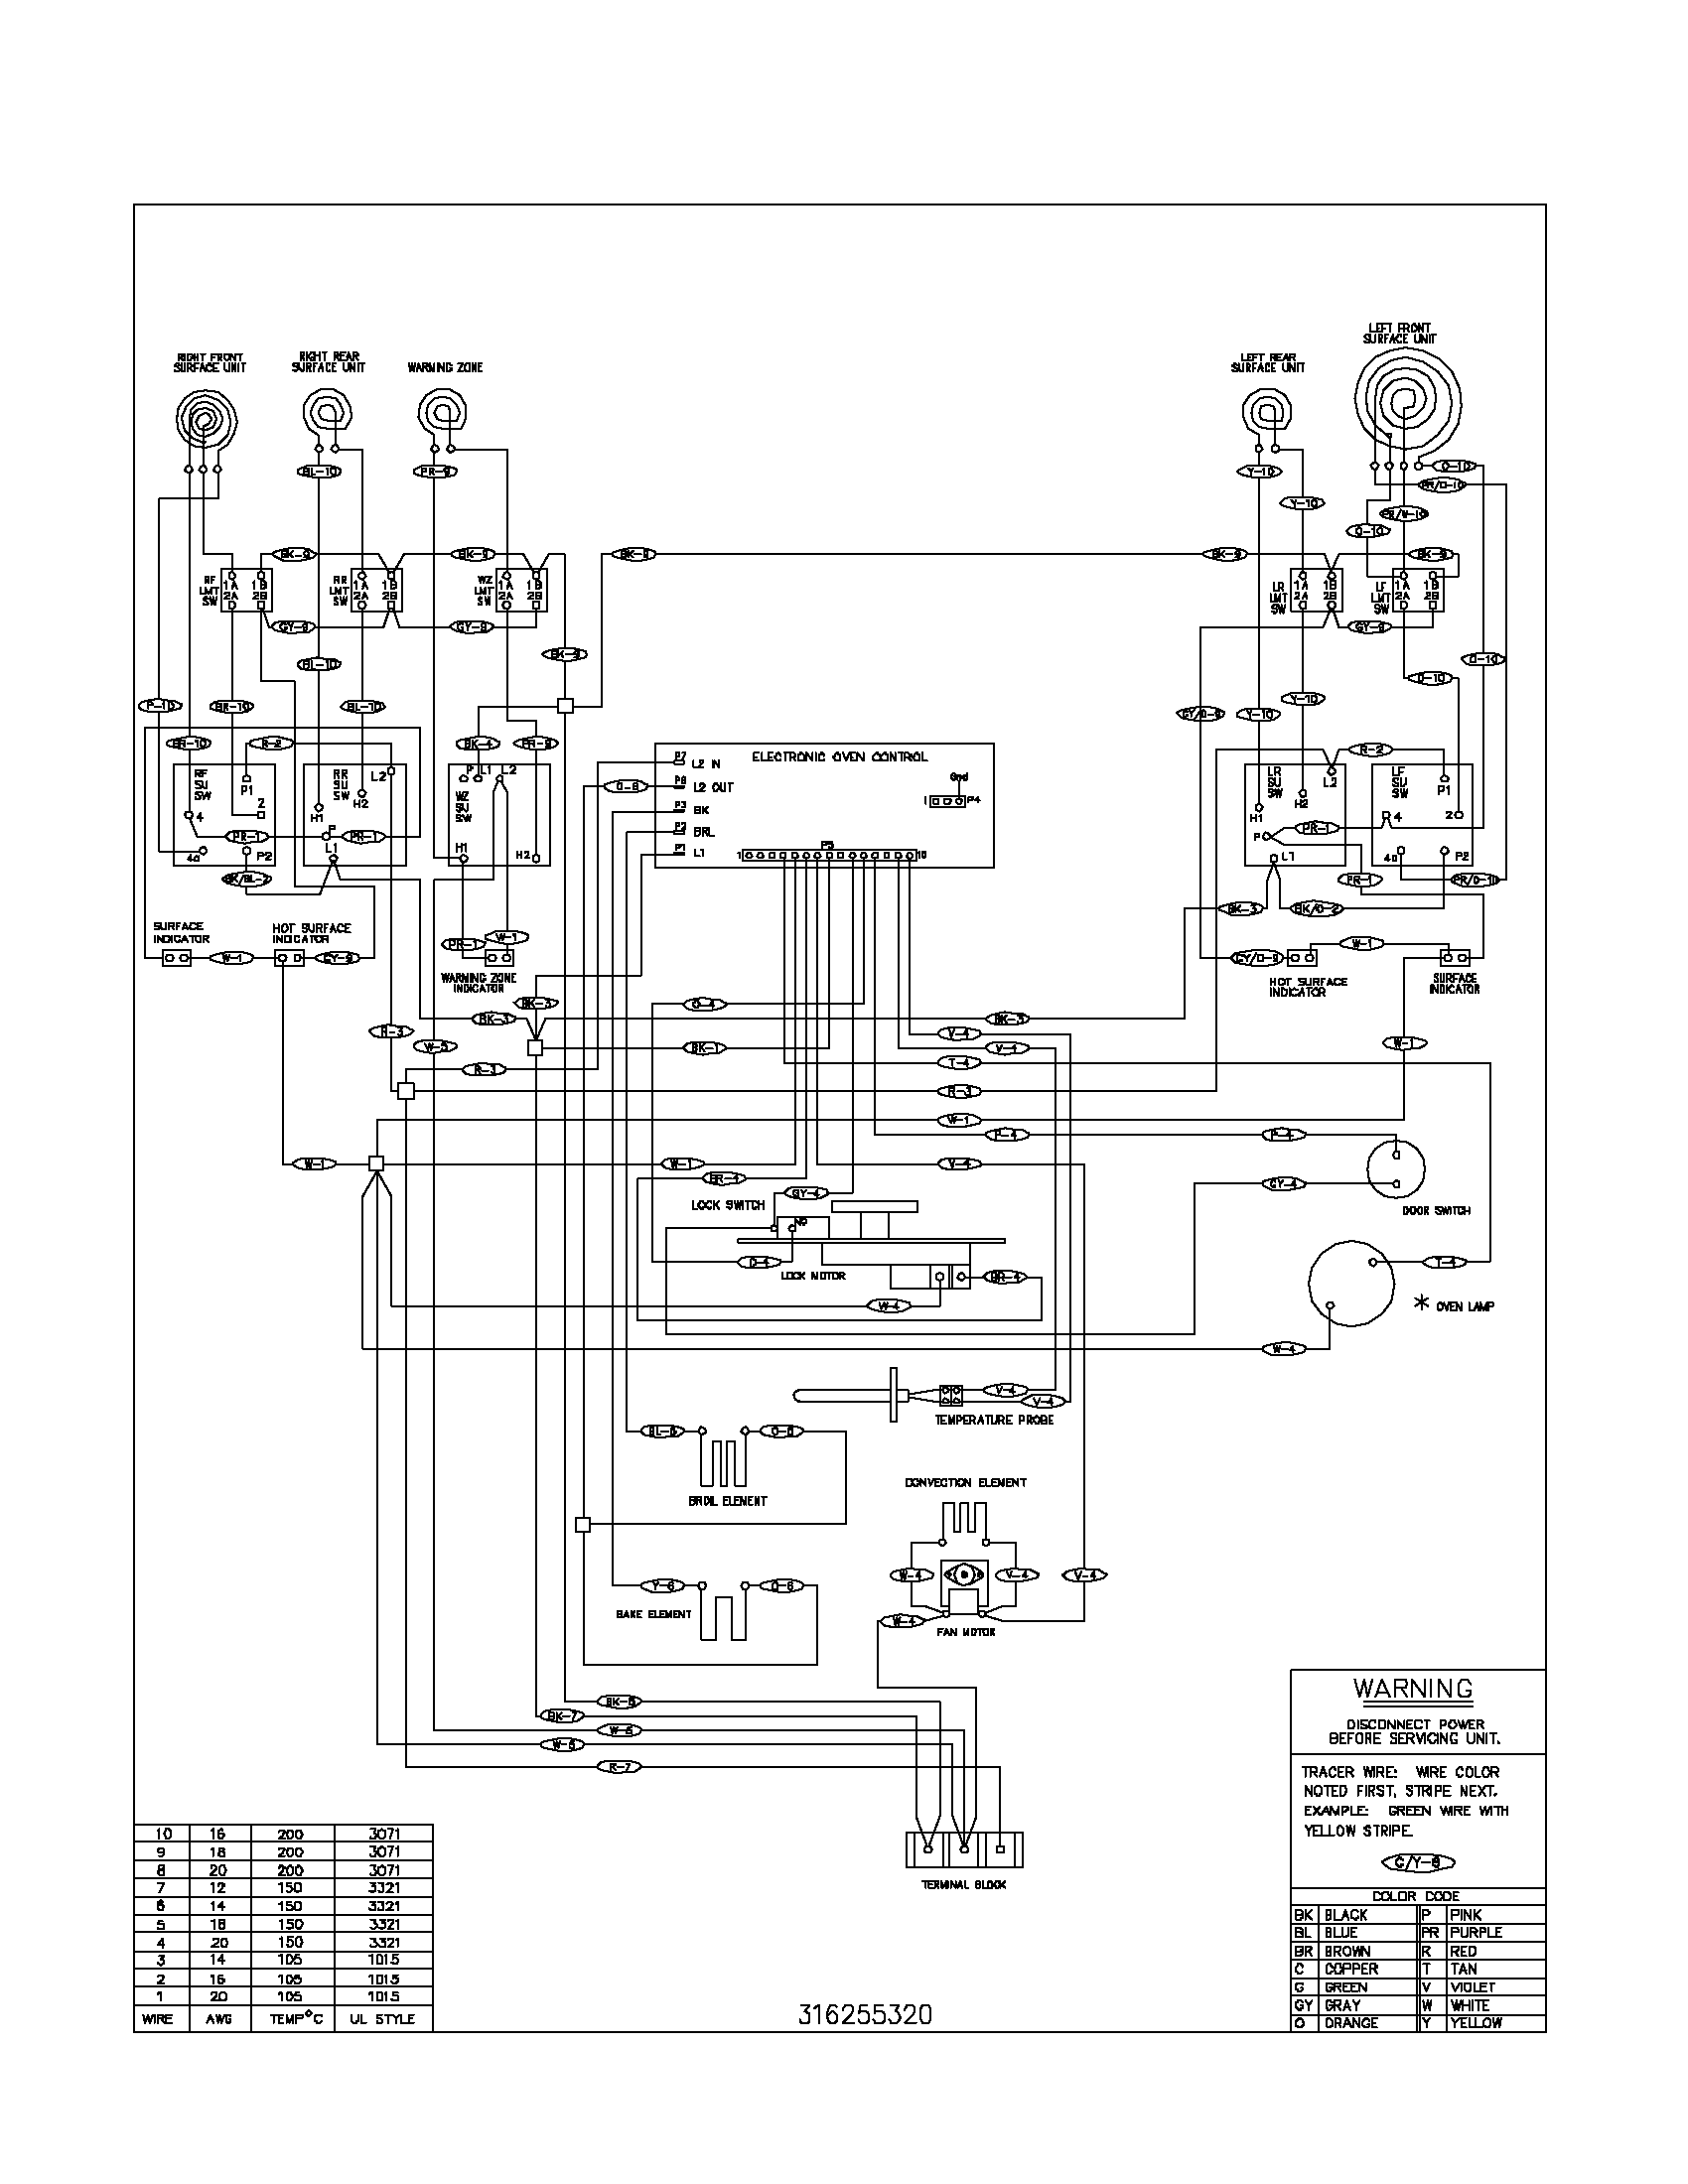 wiring diagram parts cooktop wiring diagram ice maker wiring diagram \u2022 wiring diagrams  at readyjetset.co